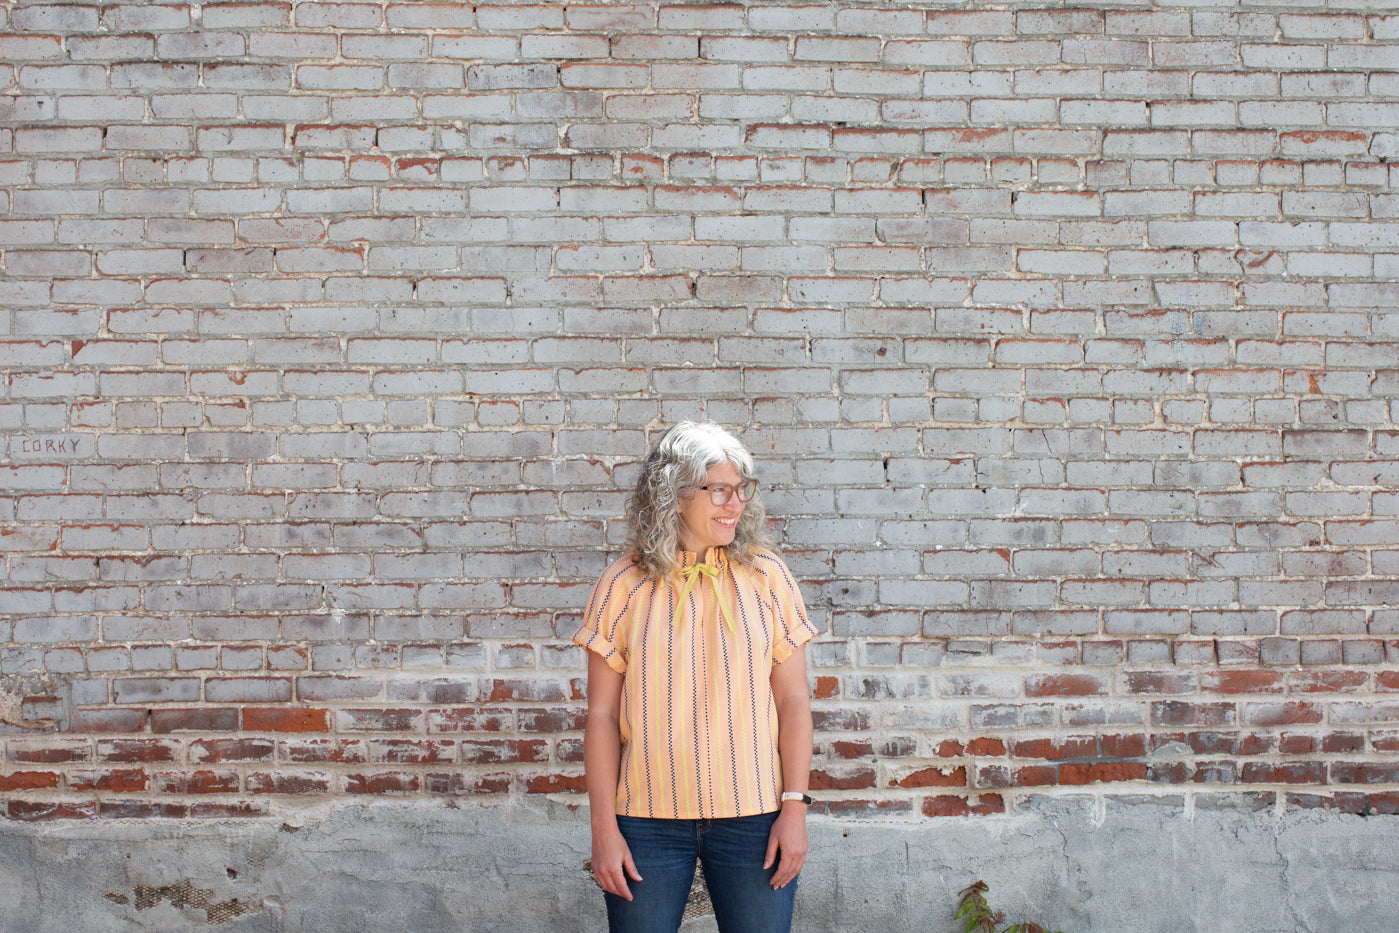 Jaime standing in front of a white washed  brick wall, looking off over her left shoulder smiling.  Jaime is wearing a peach vertical striped shirt with blue jeans.